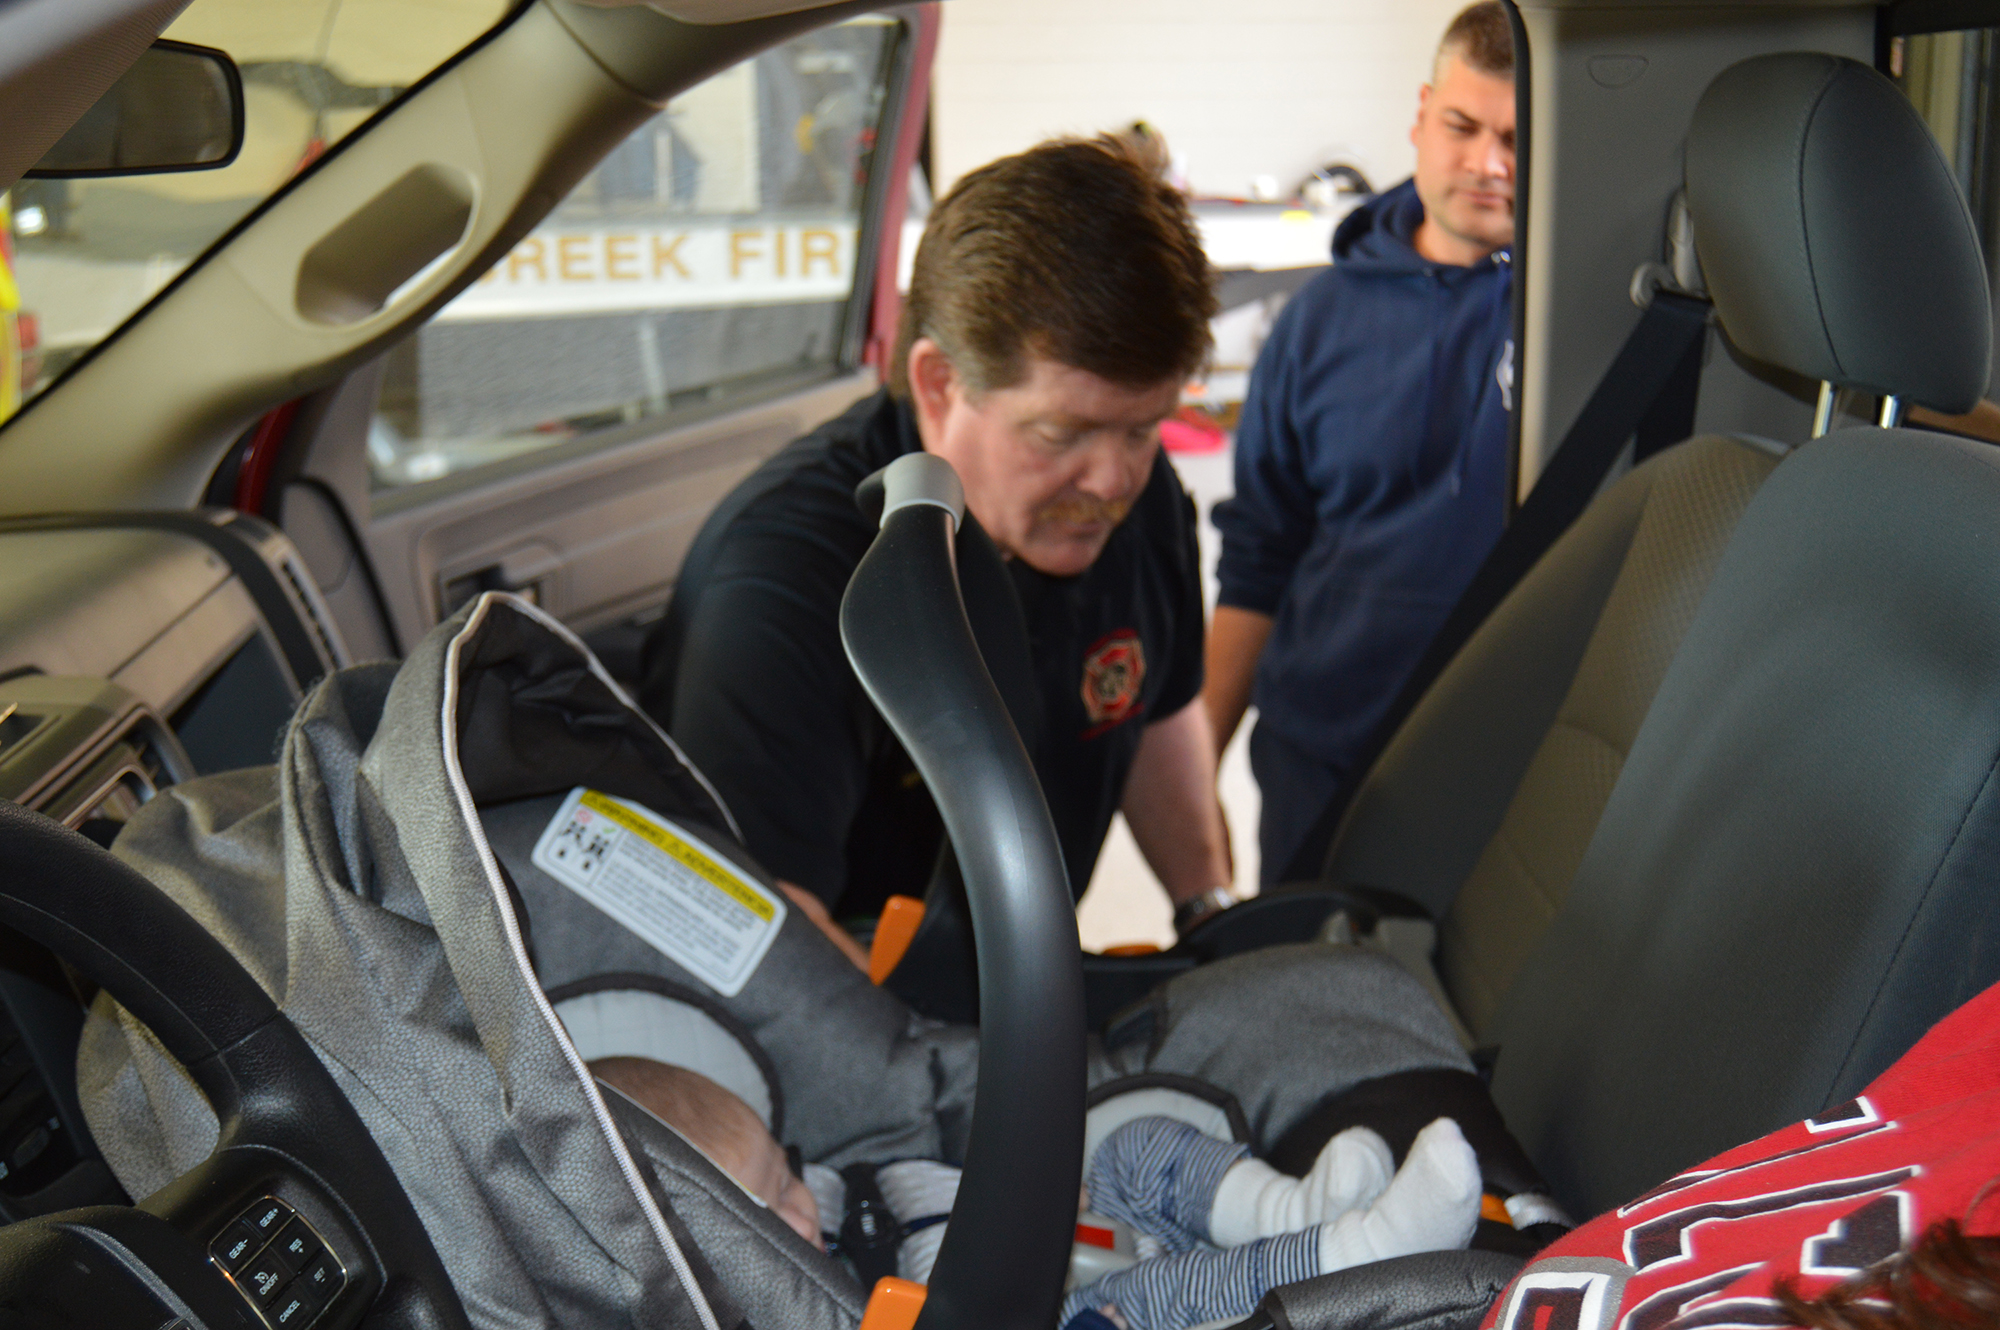 JCFD offers Car Seat Check-Up event Jan. 12